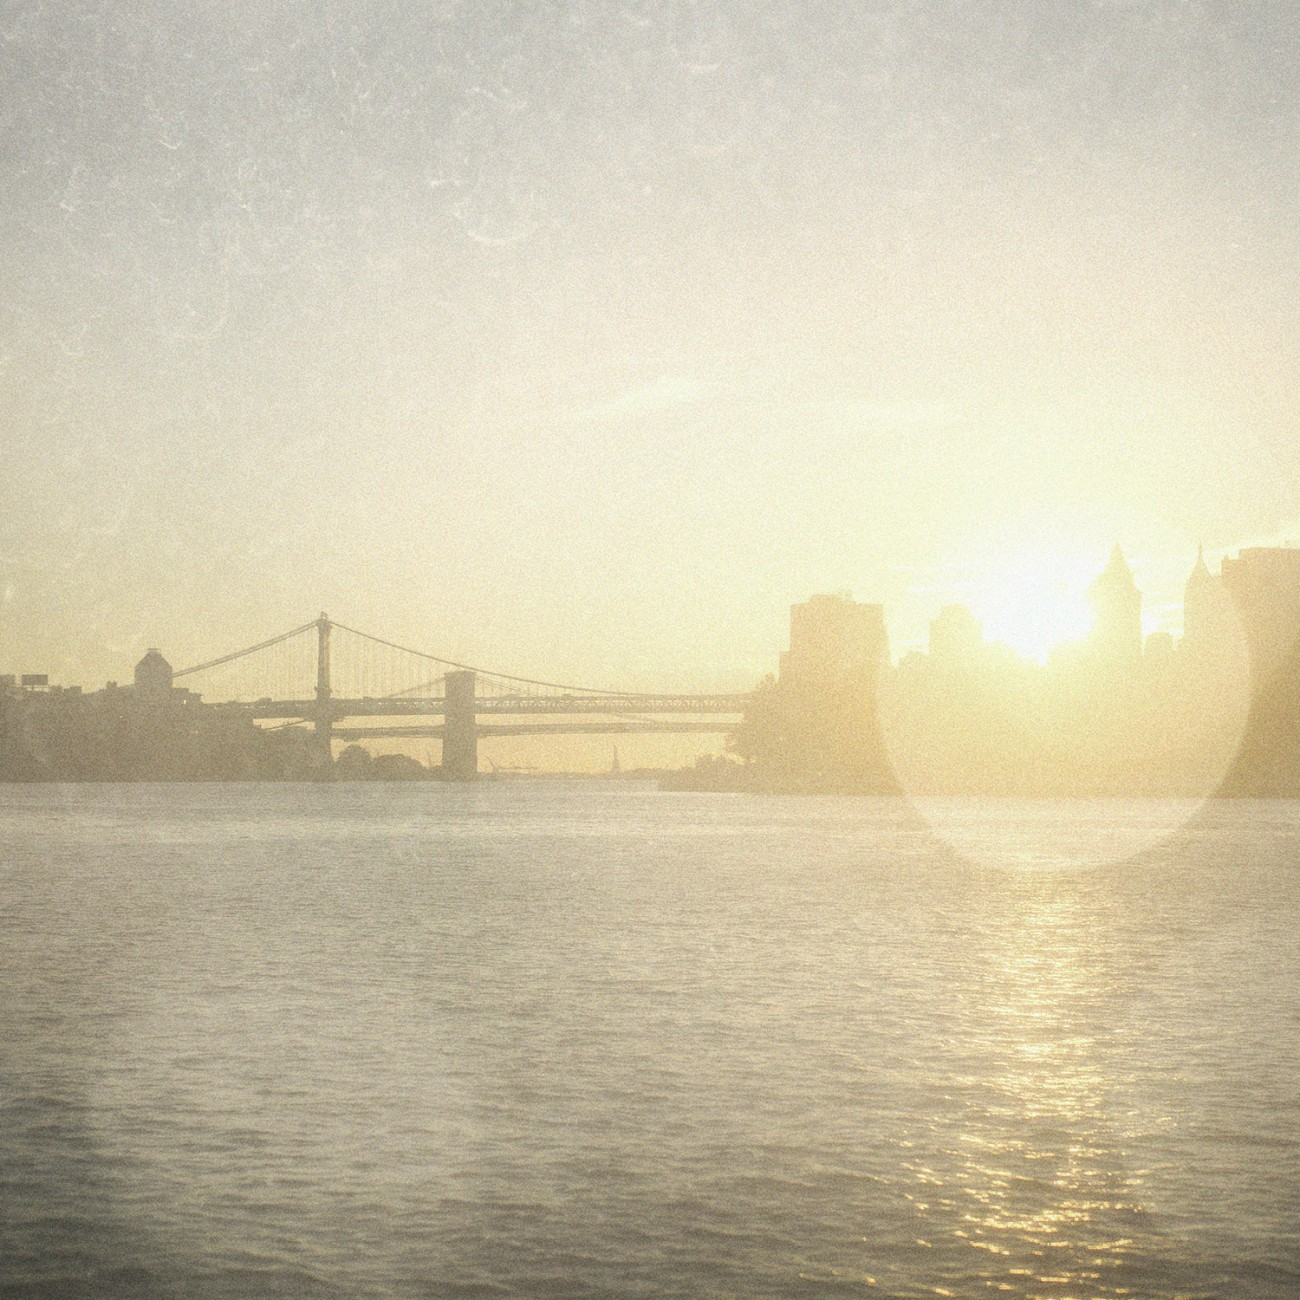 East River sunset, NY, 2015